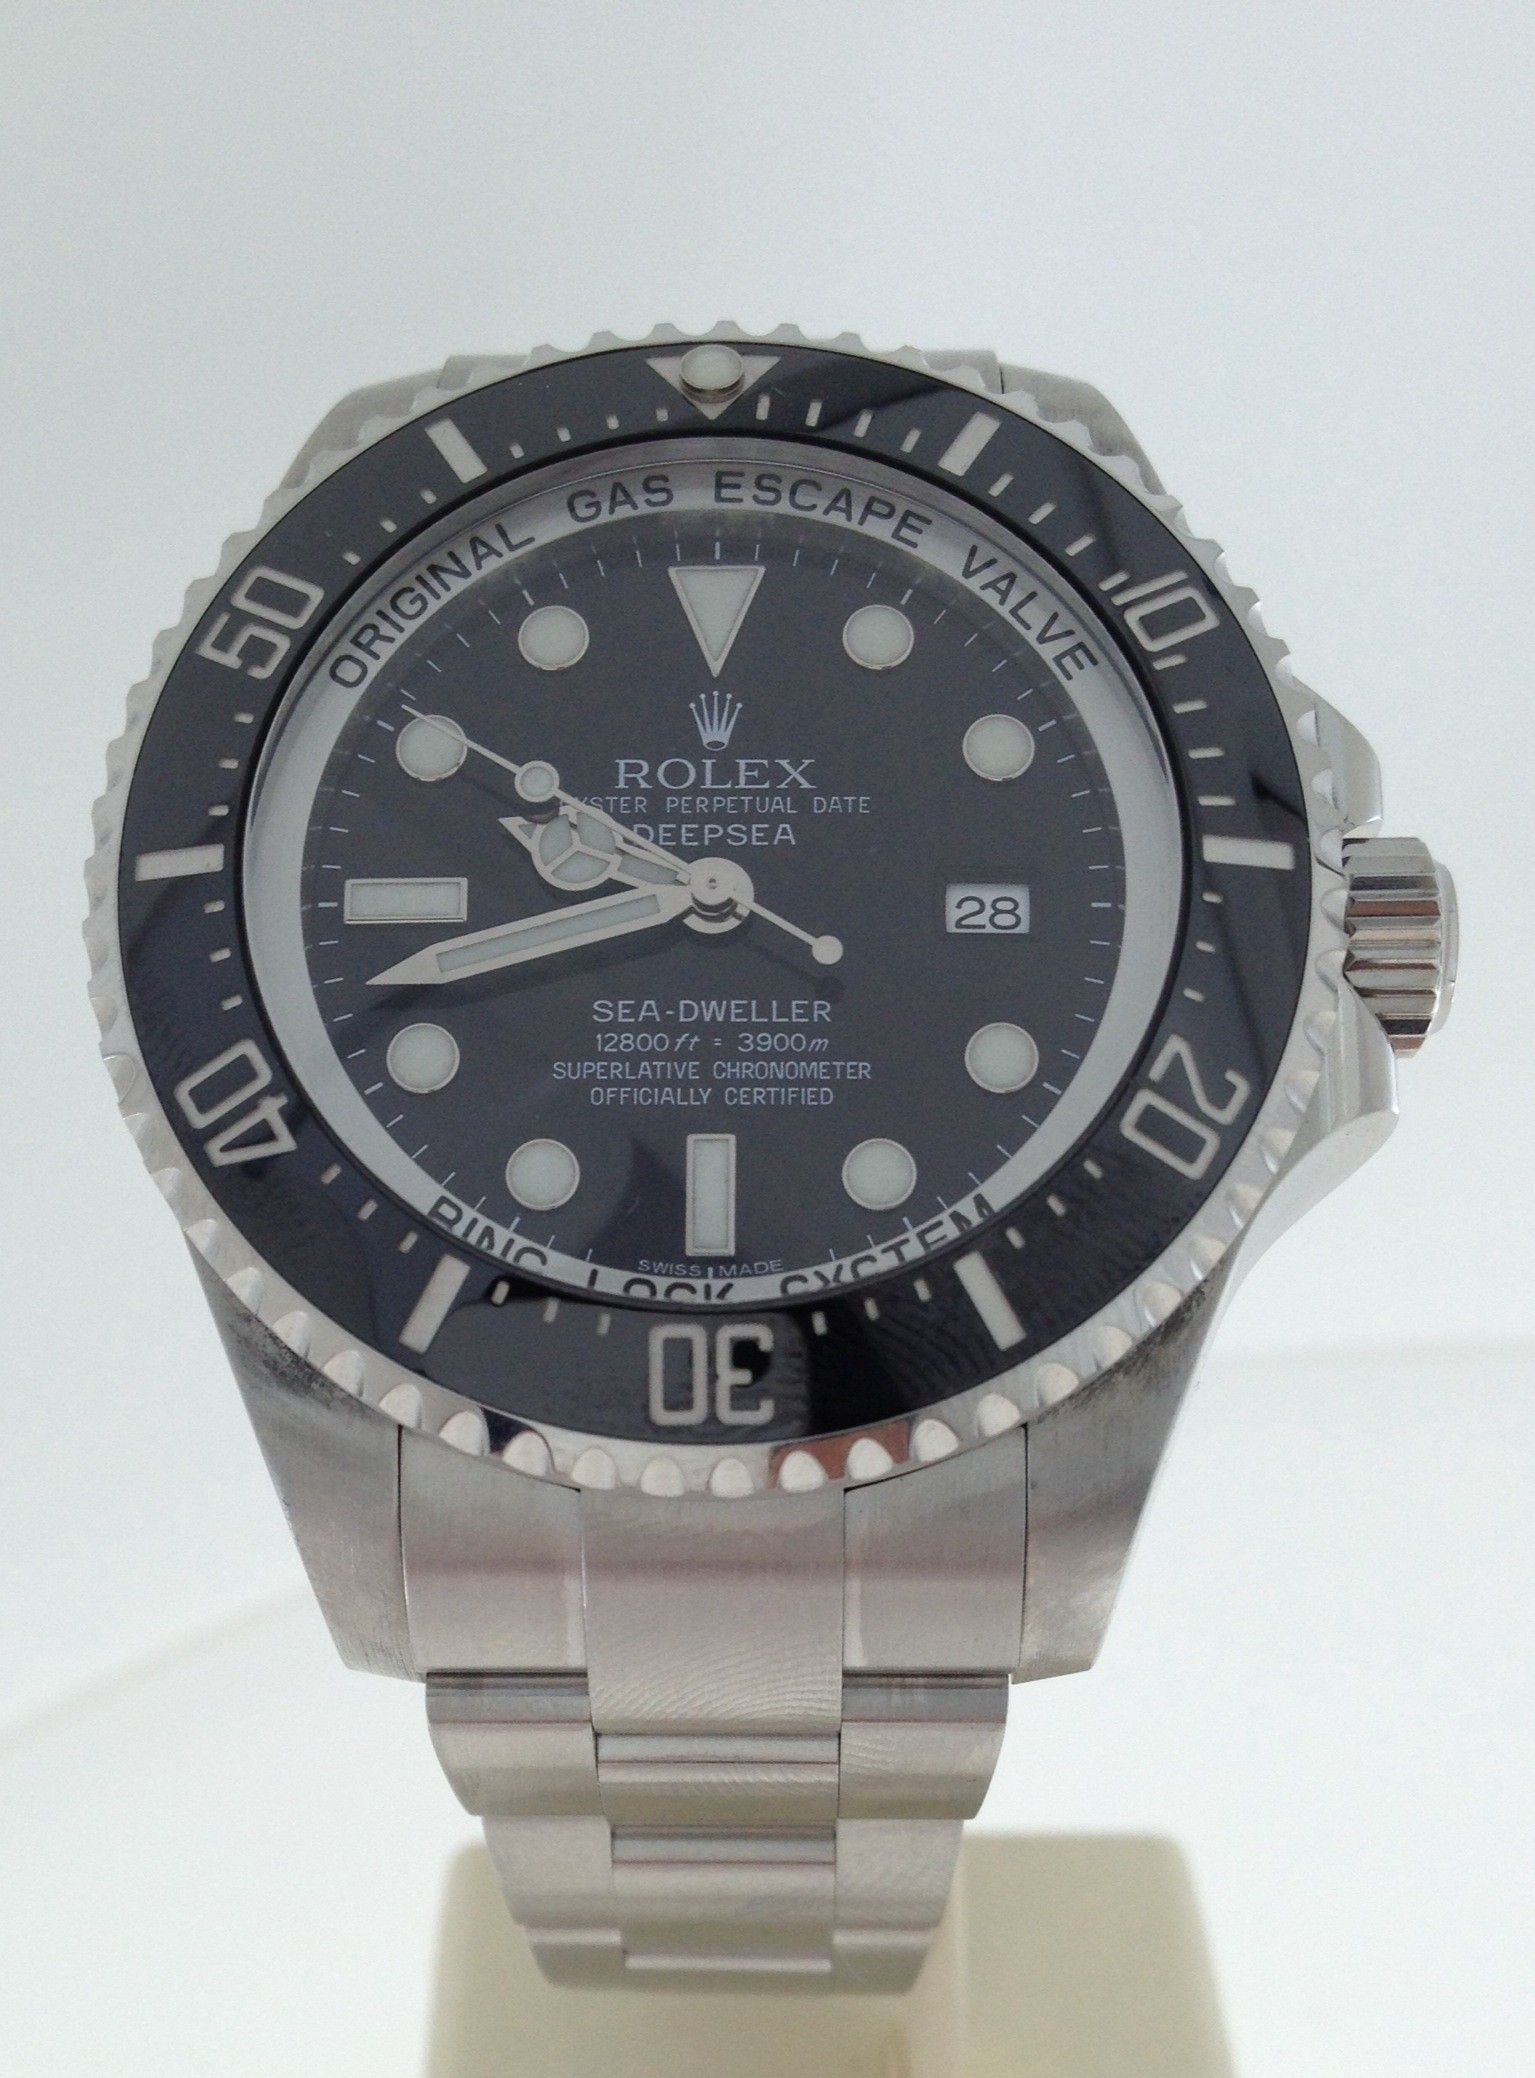 Pre Owned Gents Rolex Deepsea Seadweller Https Johnsonsjewellers Co Uk Watches Pre Owned Gents Rolex Deepsea Seadw Rolex Rolex Watches For Men Rolex Watches